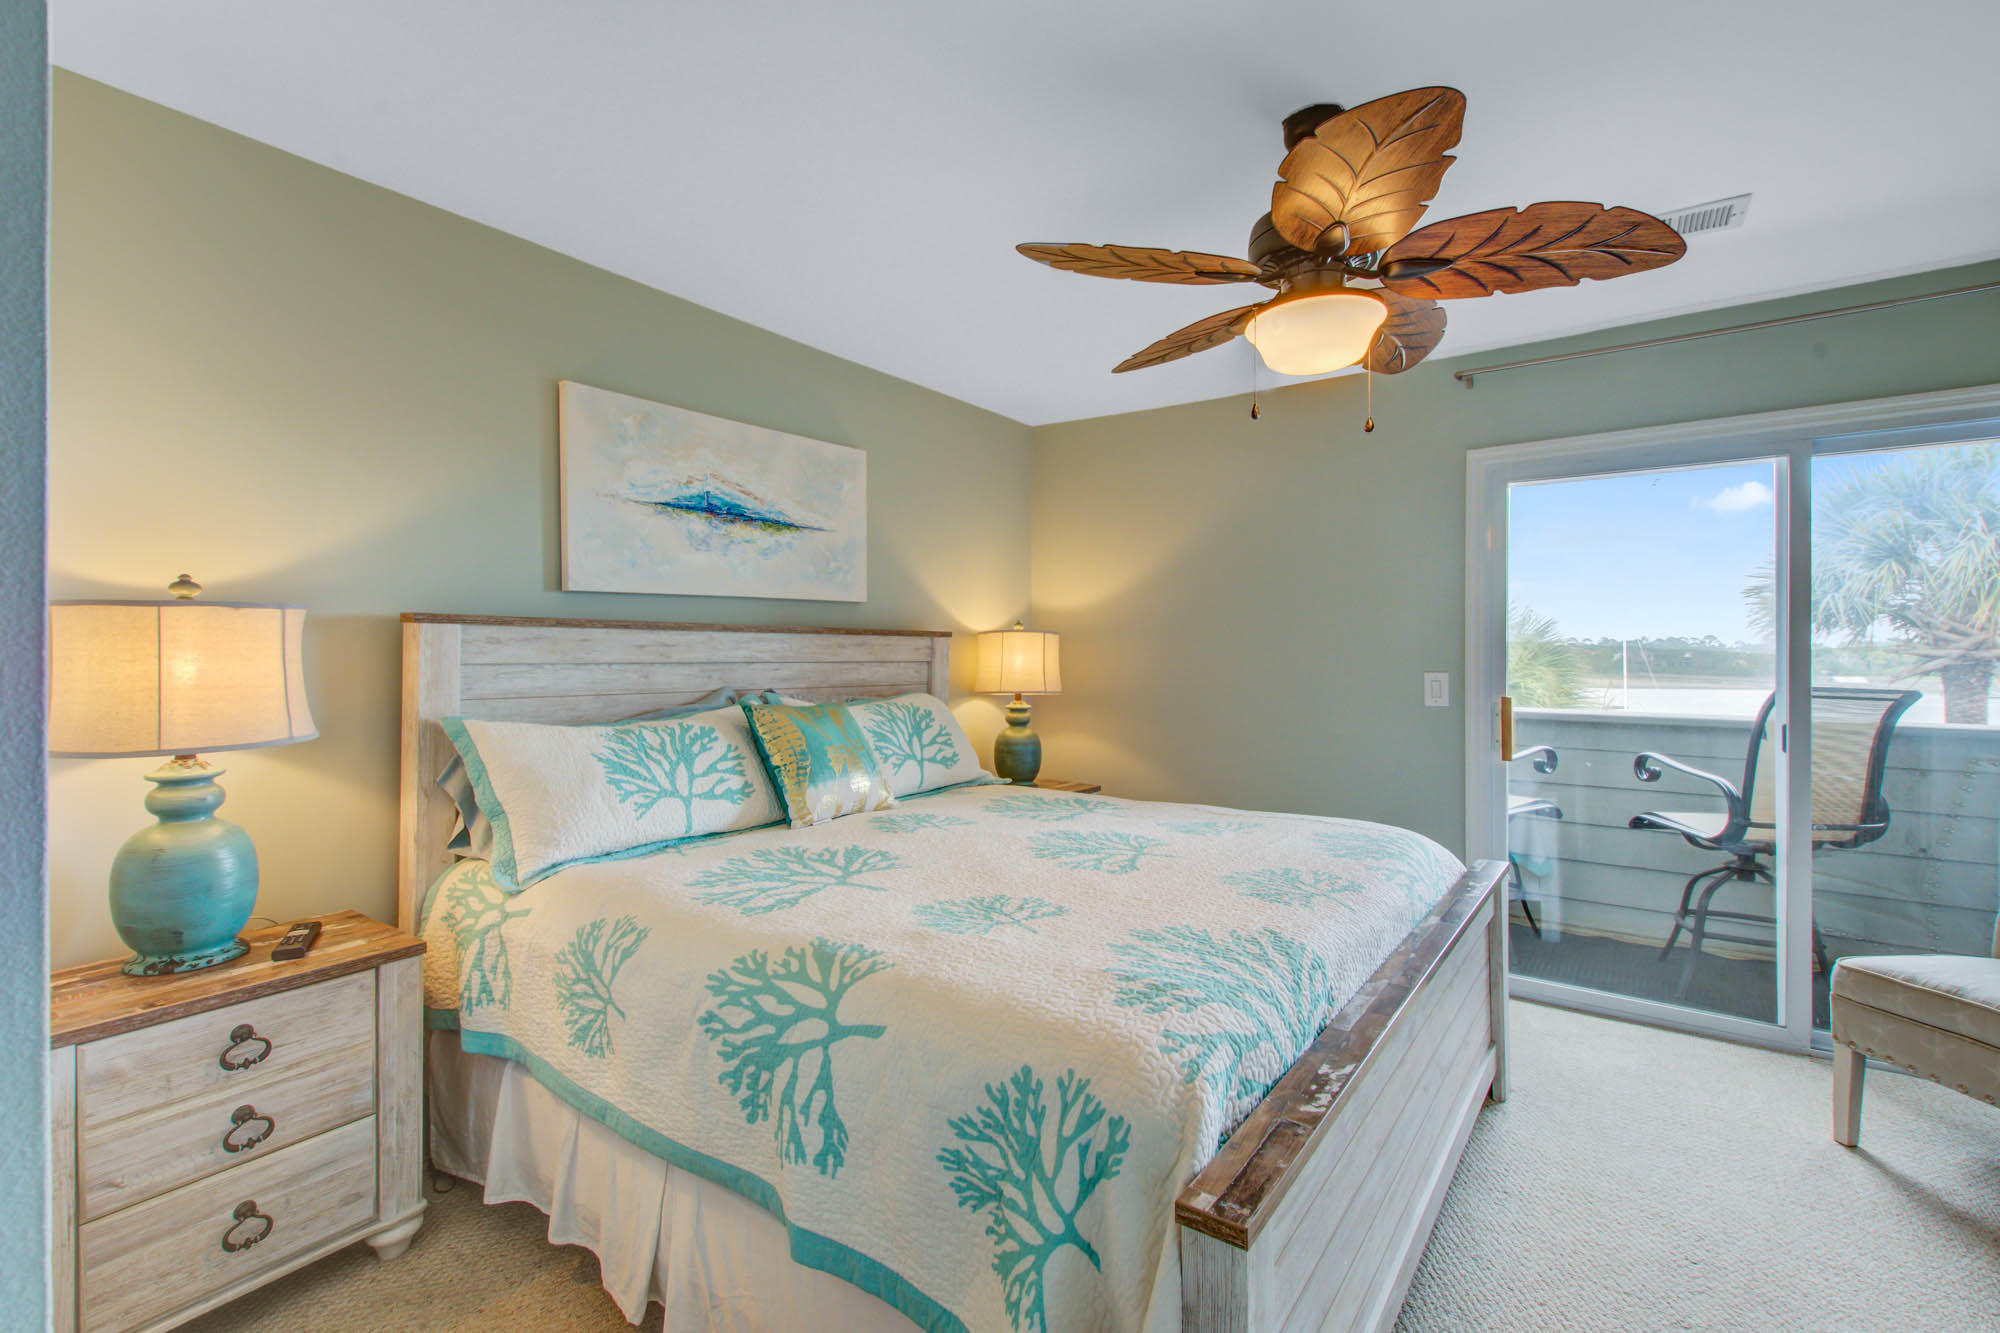 Mariners Cay Homes For Sale - 56 Mariners Cay, Folly Beach, SC - 1